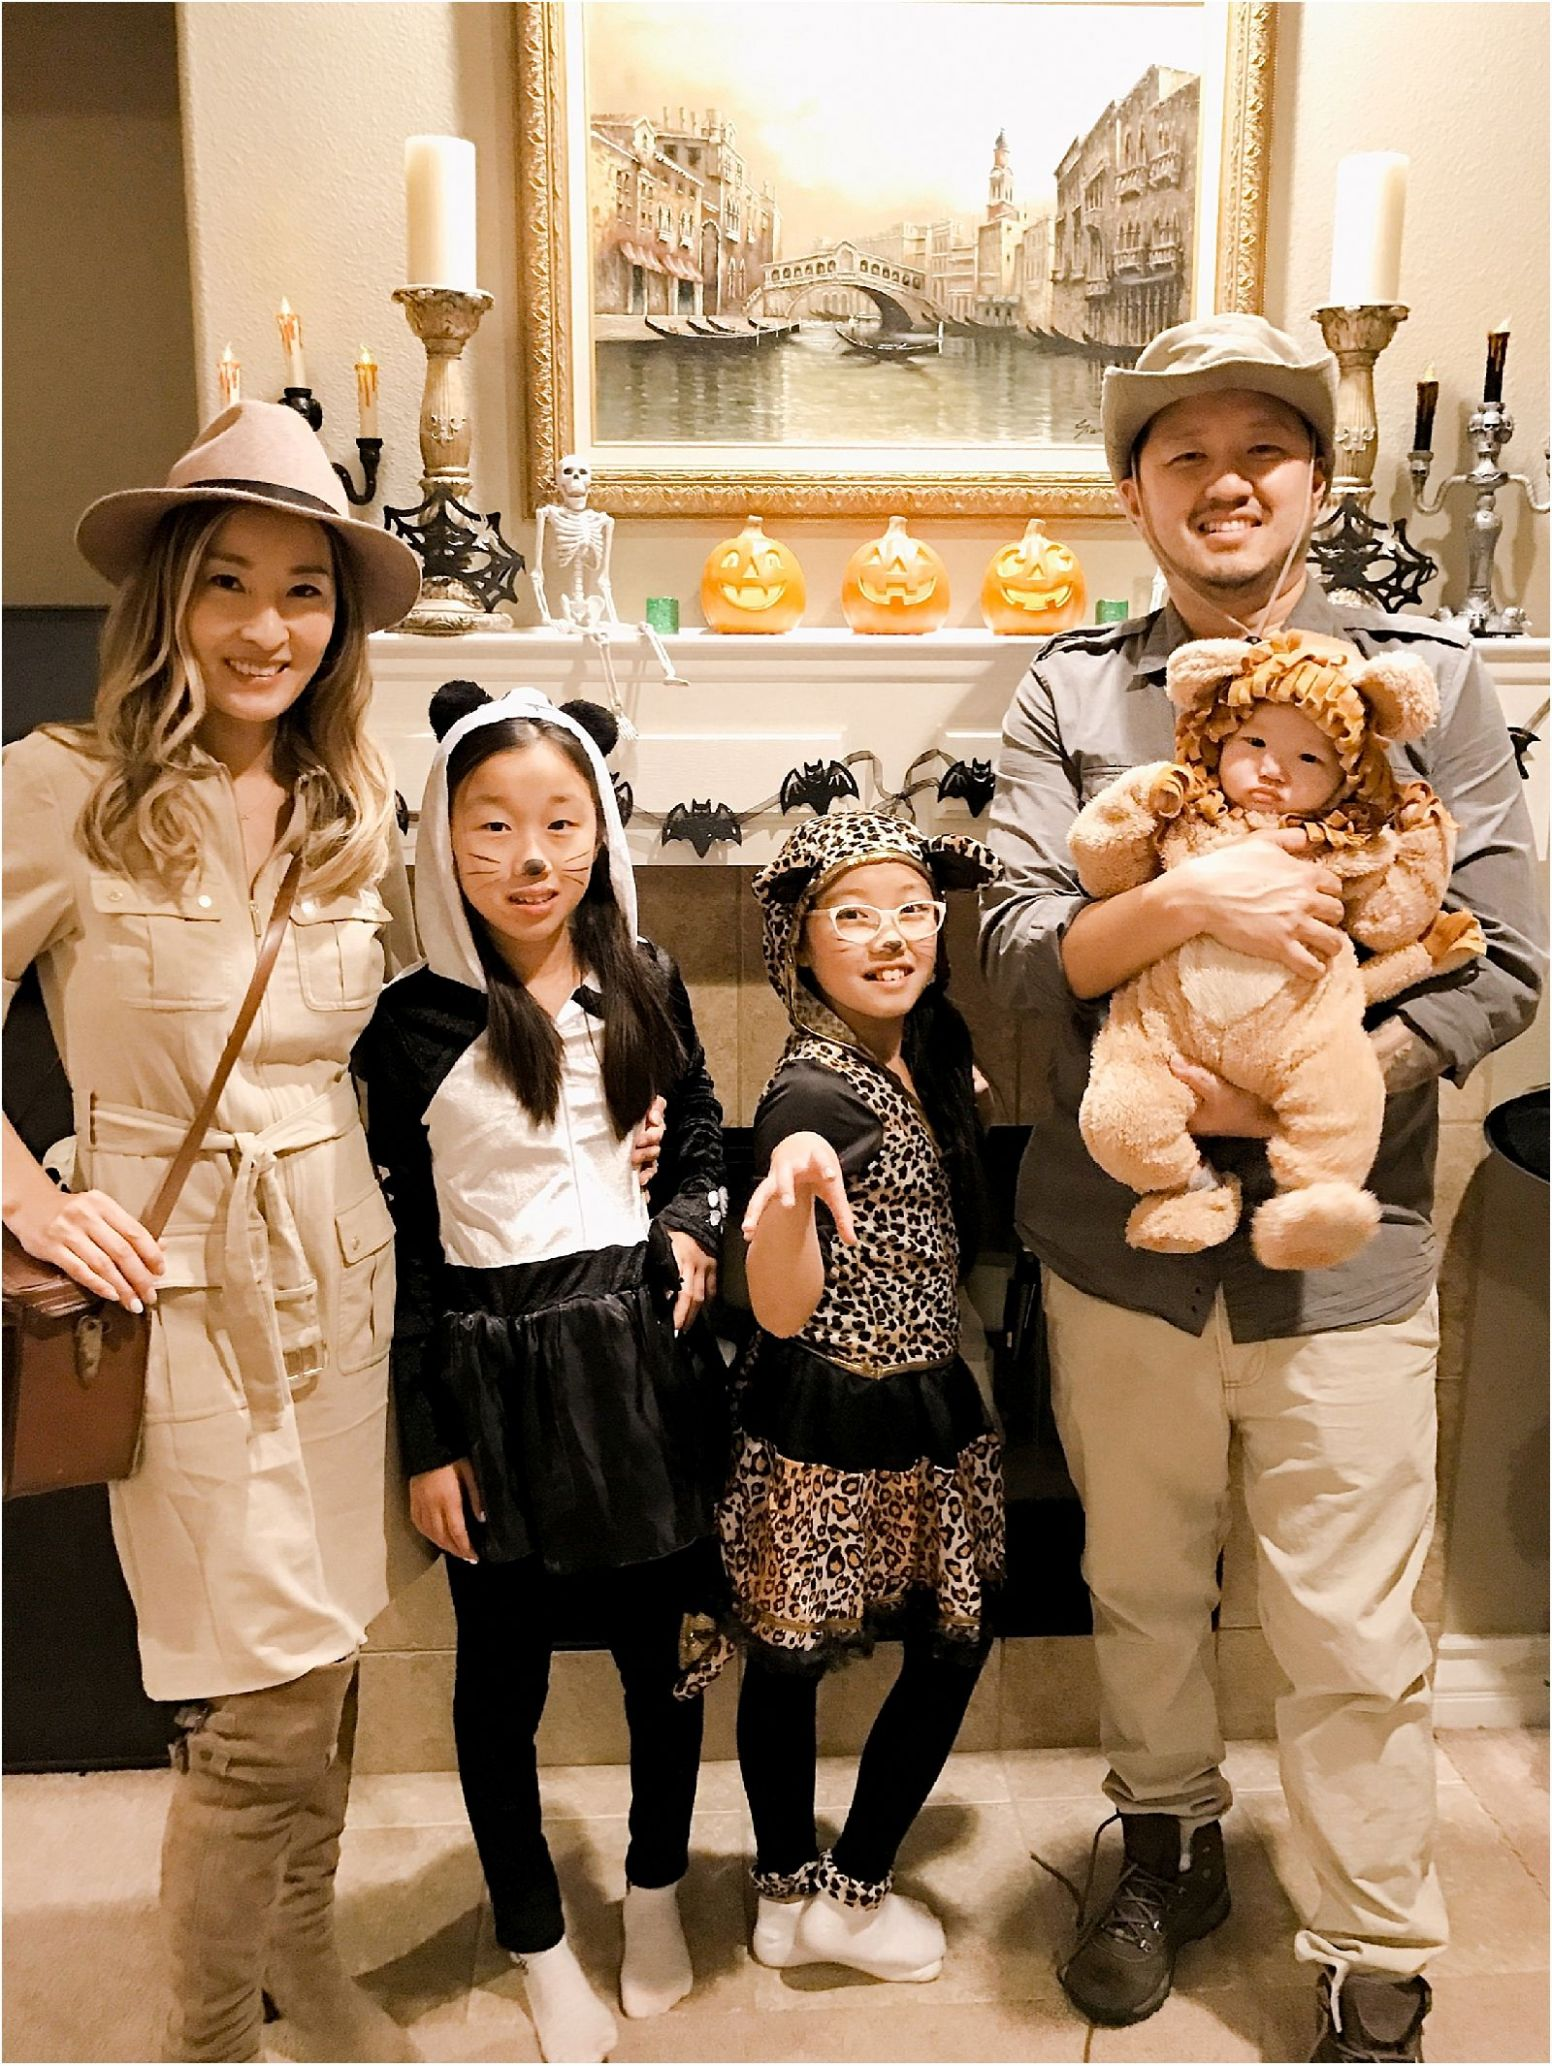 Unique Family Halloween Costume Ideas (With images) | Animal ...